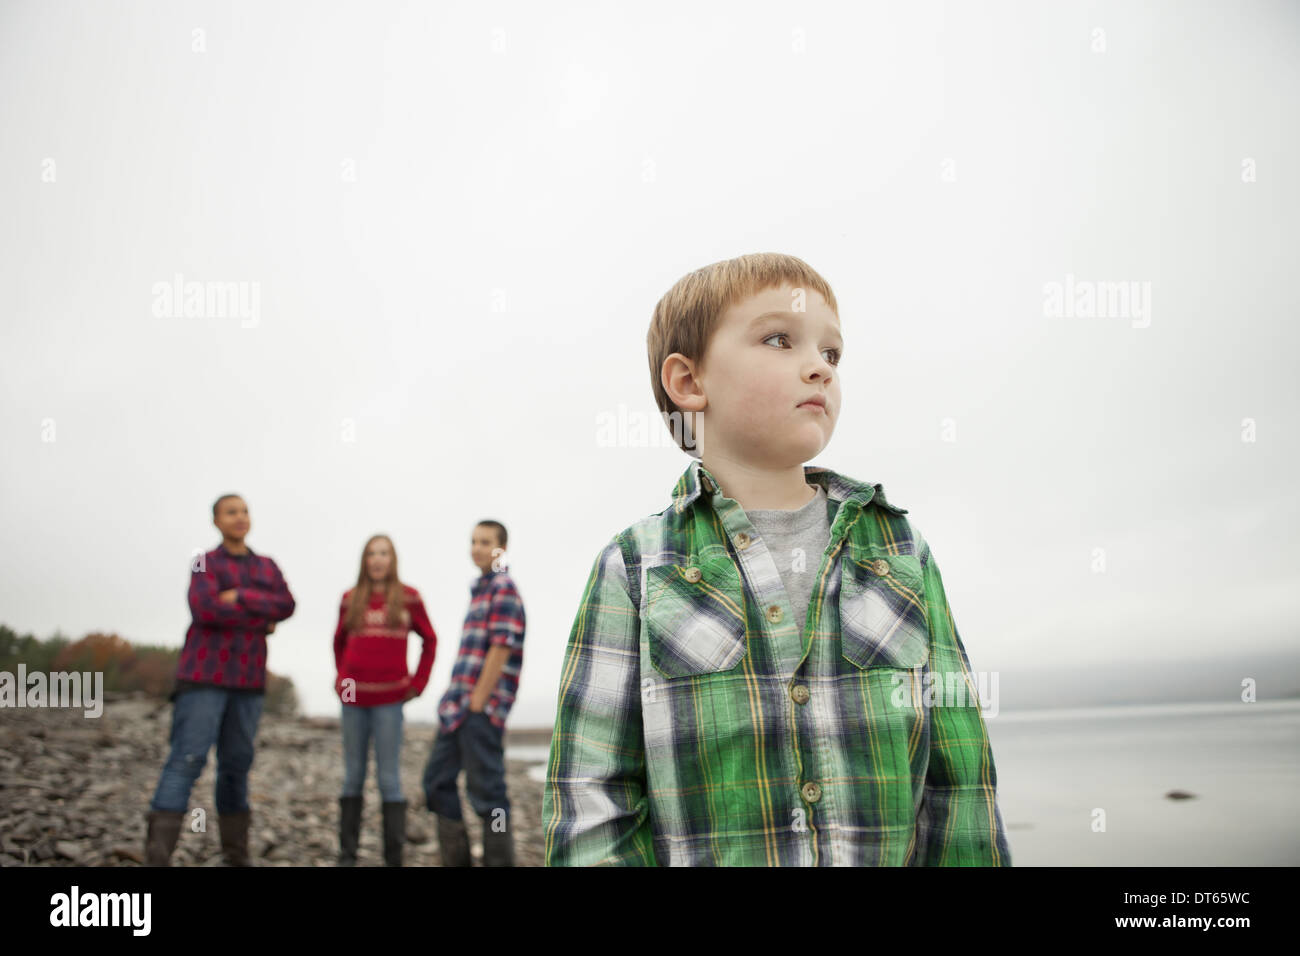 A day out at Ashokan lake. Three teenagers and a young boy on shore. - Stock Image